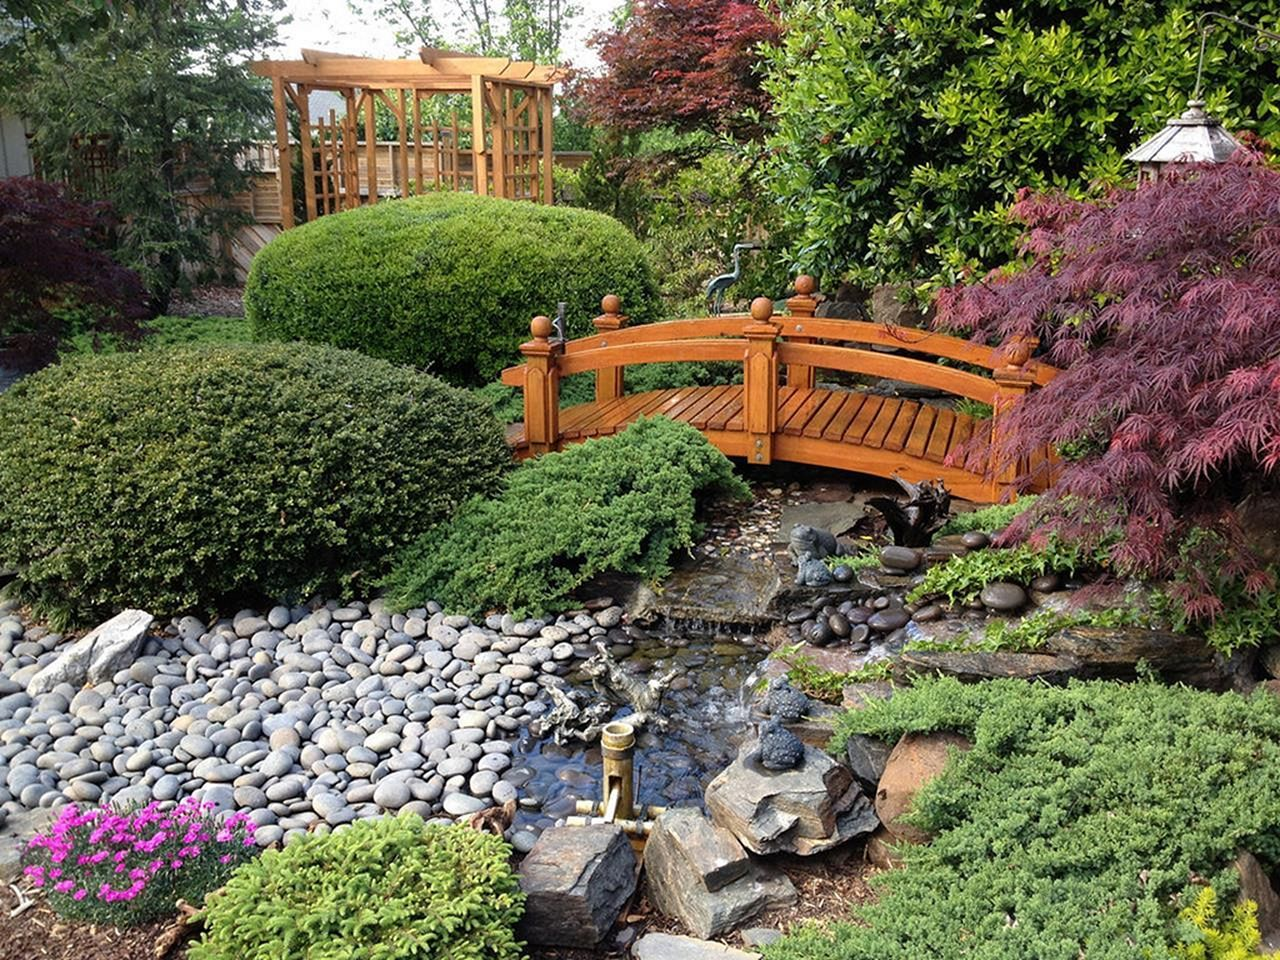 wooden bridge crossing over stone garden fountain with shrubberies and softscaping next to pergola